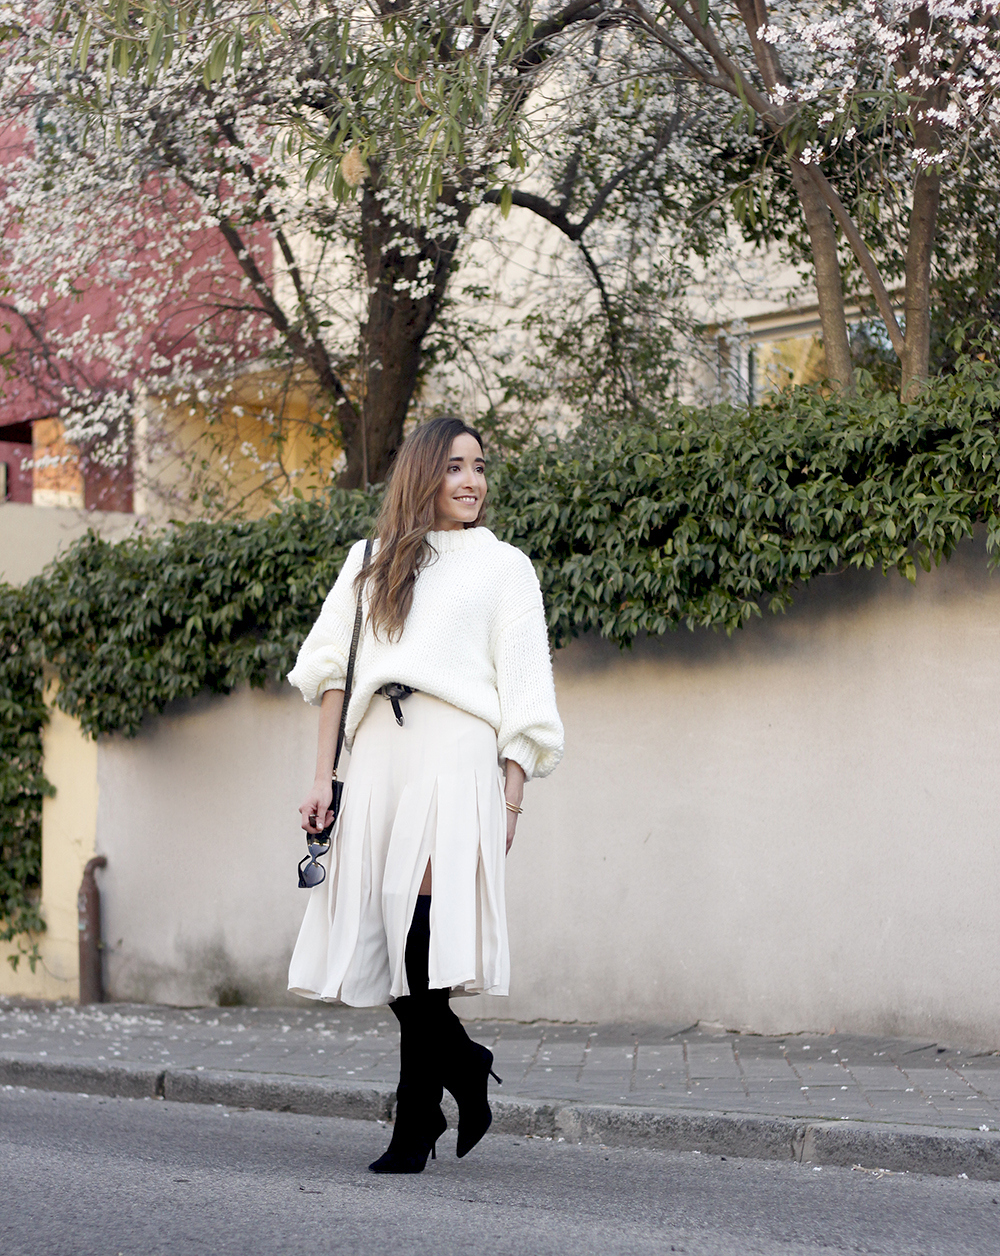 pink pale midi skirt white sweater black boots givenchy bag street style outfit 201911